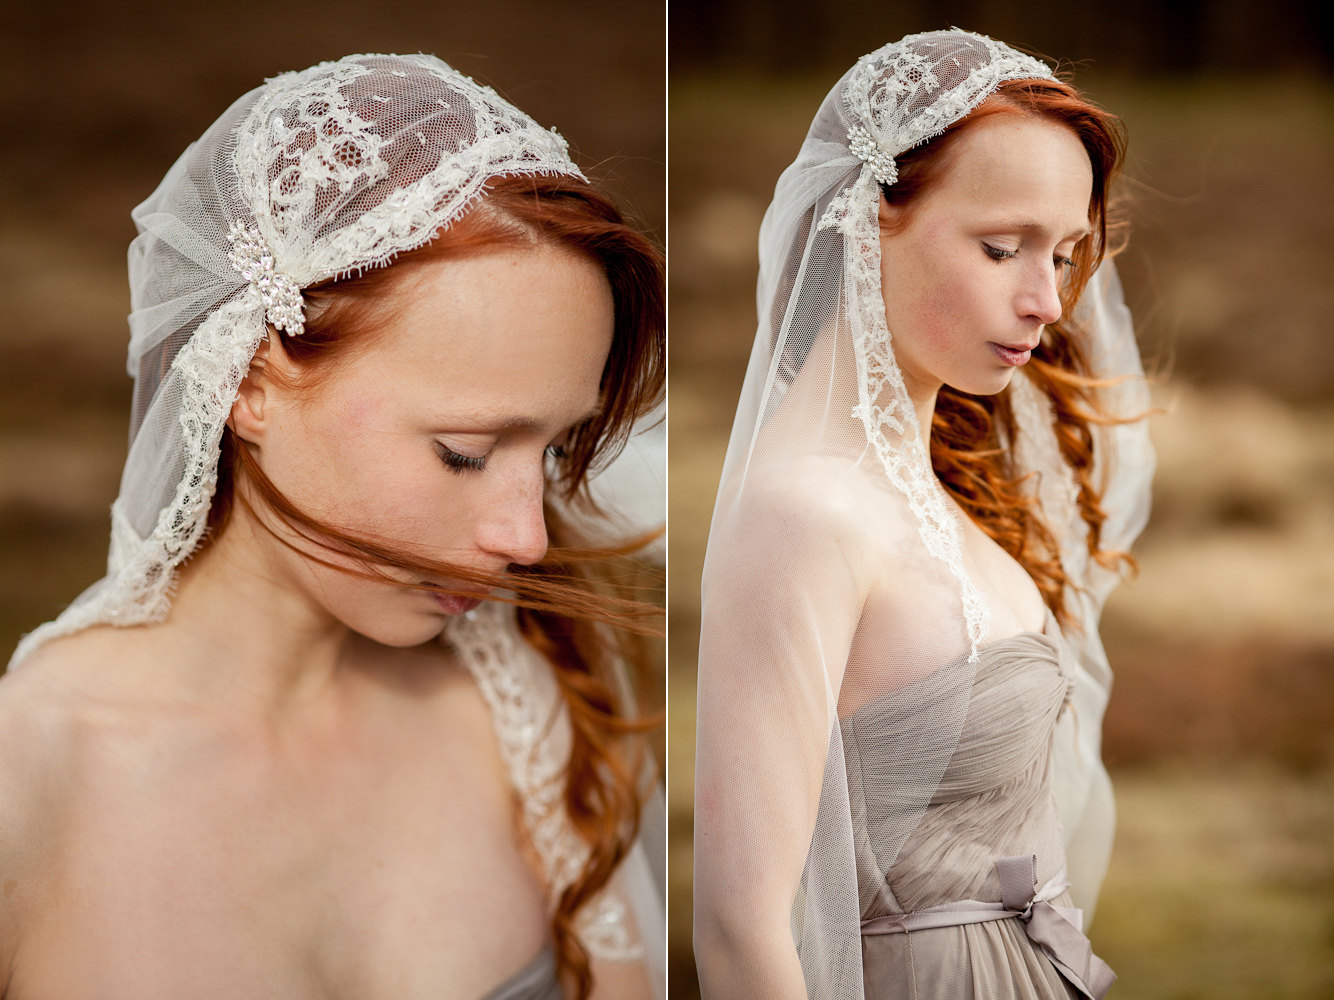 Wedding-accessories-spotlight-etsy-bridal-headpieces-lace-tulle-mantilla.original